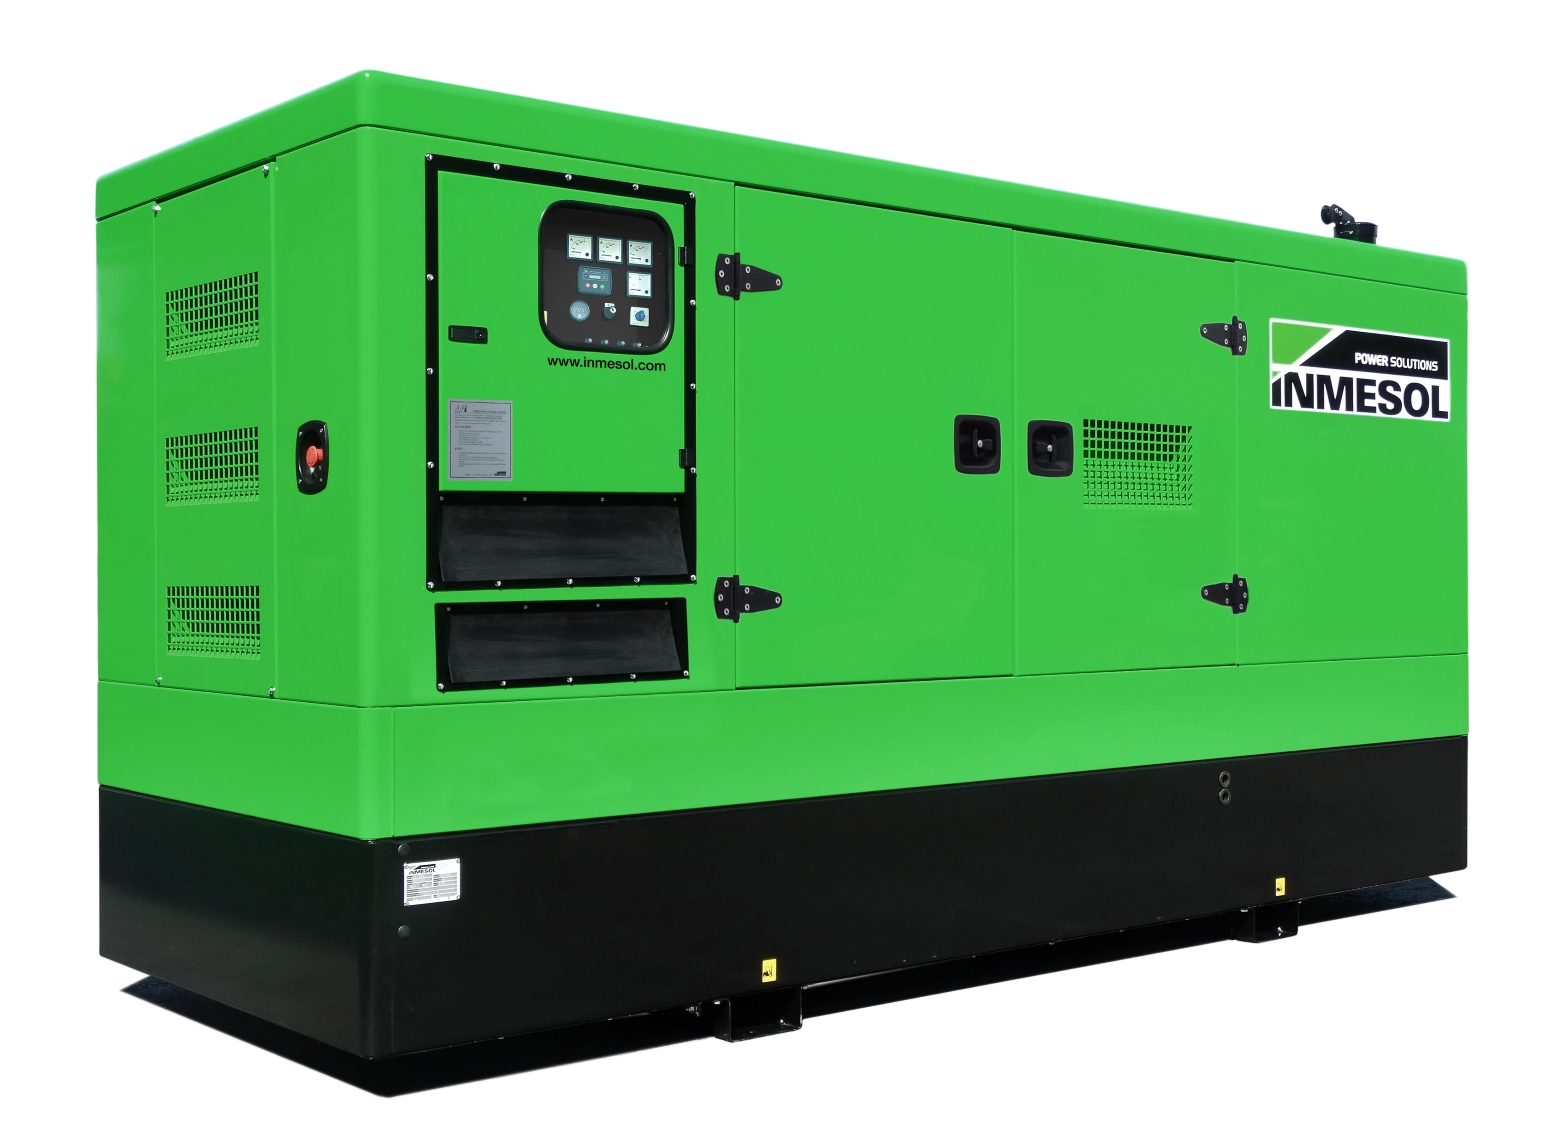 Generator with manual control panel.IV-295 - VOLVO - TAD734GE(60HZ) - 1.800 R.P.M. | 60 Hz